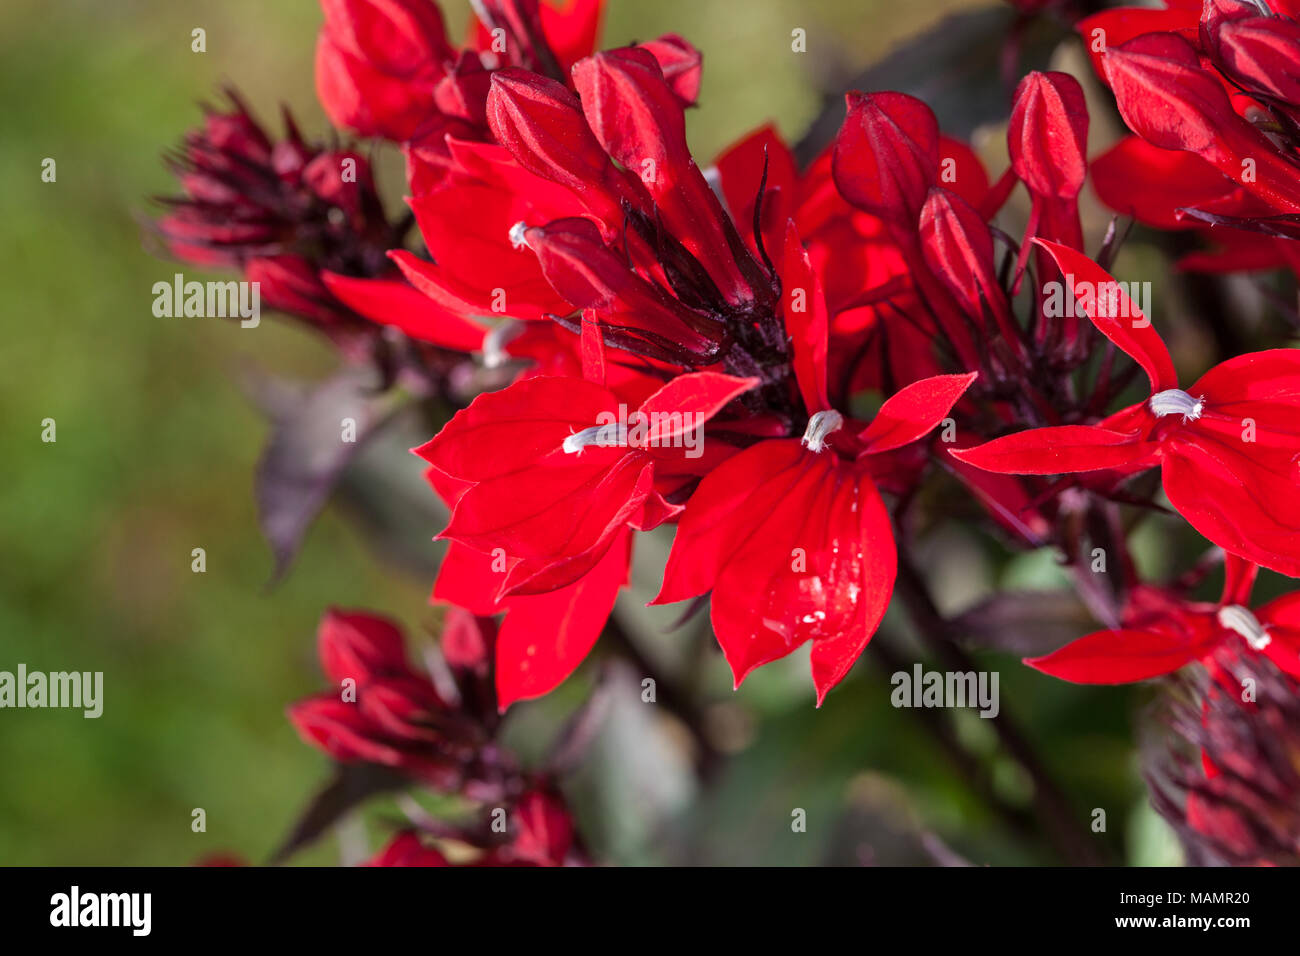 Lobelia Speciosa Stock Photos Lobelia Speciosa Stock Images Alamy